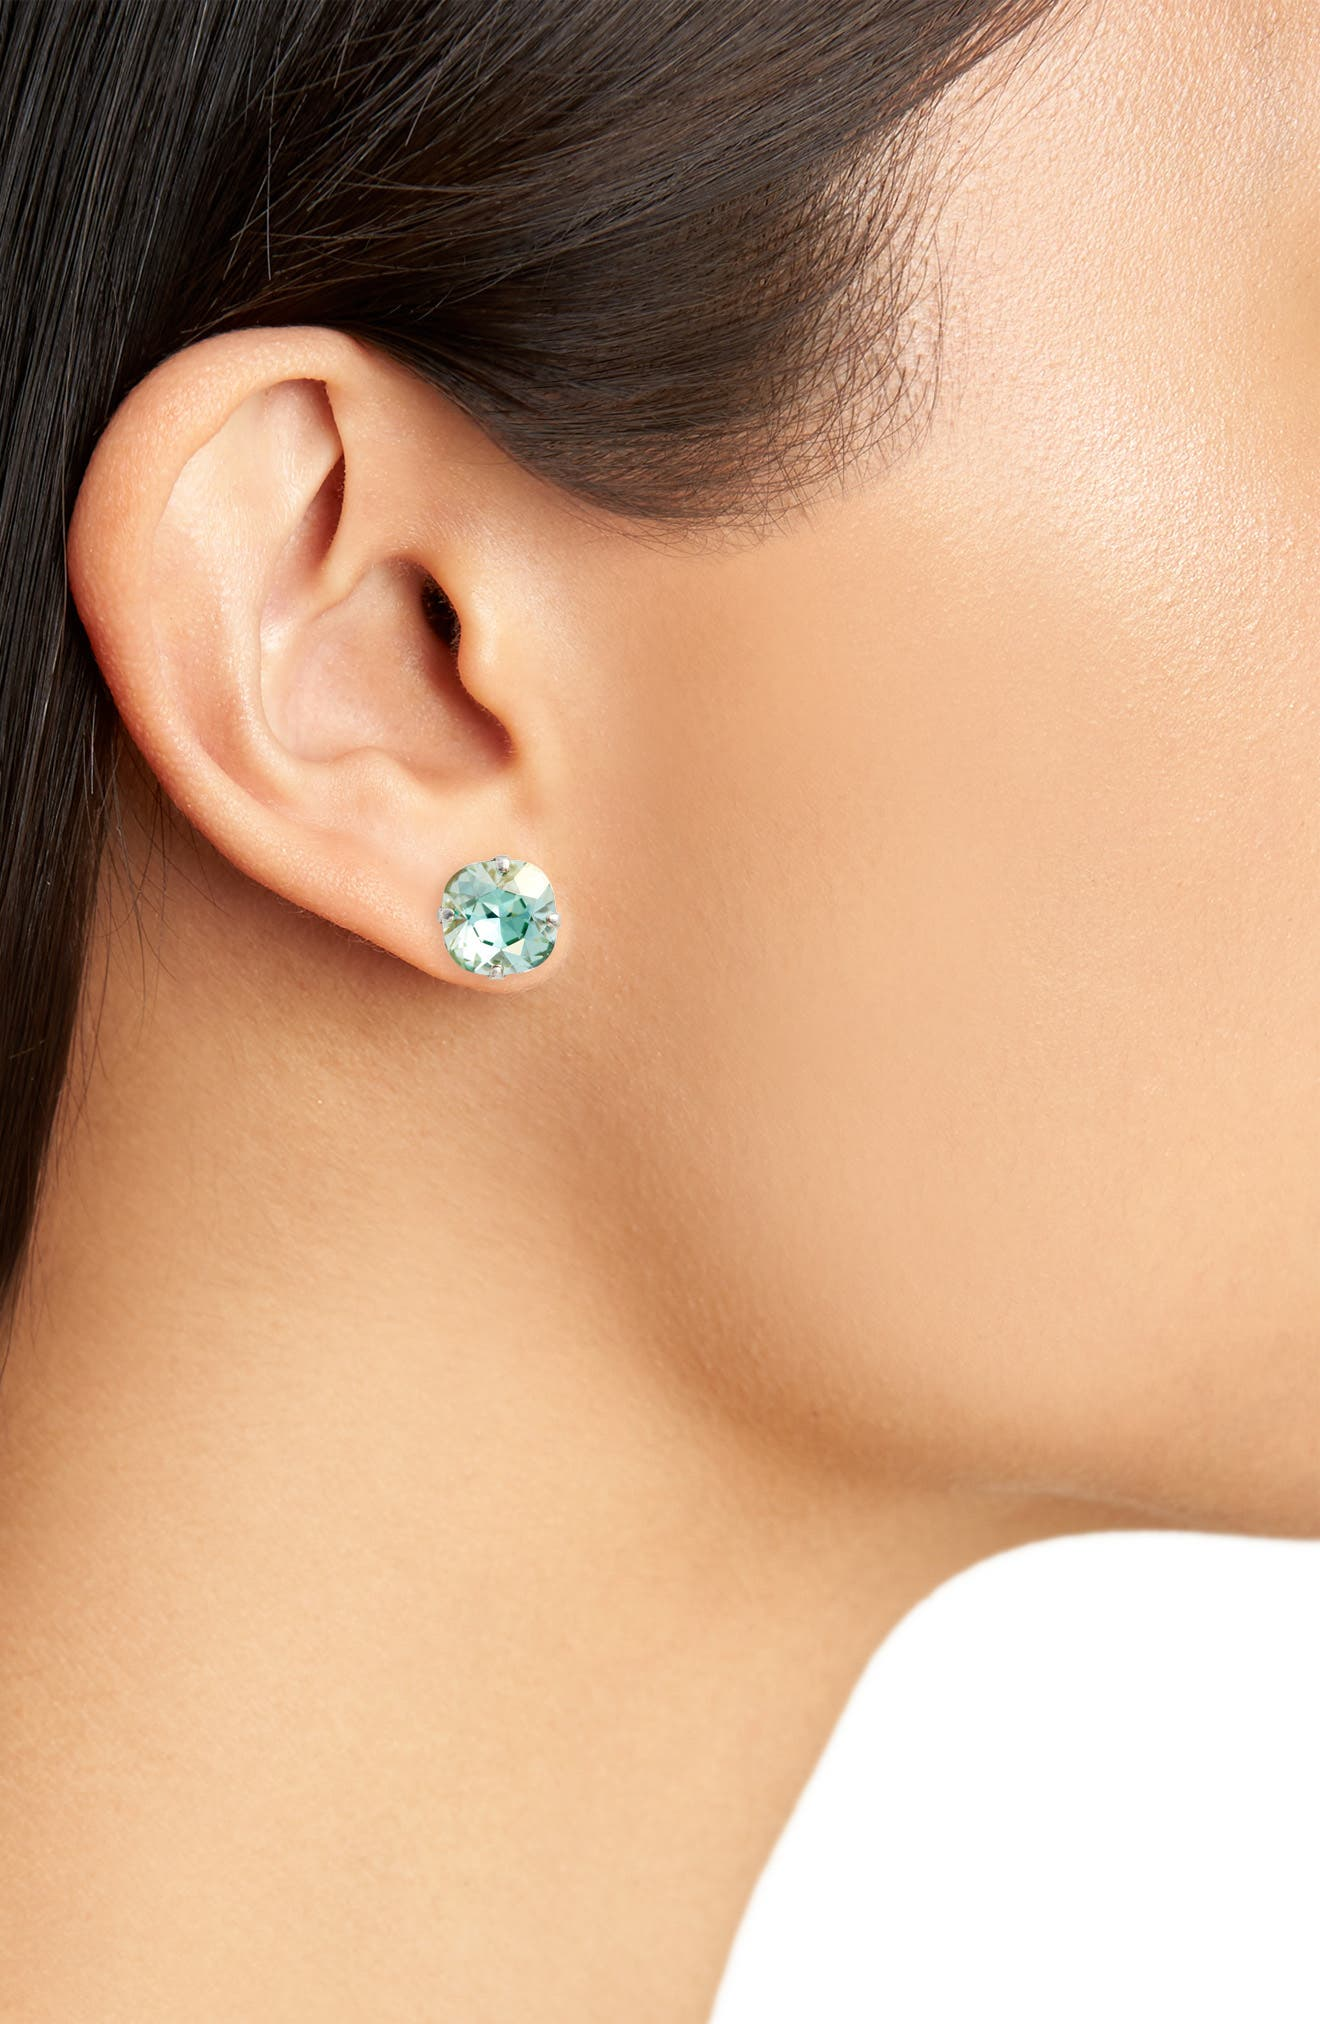 Halcyon Crystal Earrings,                             Alternate thumbnail 2, color,                             Light Blue